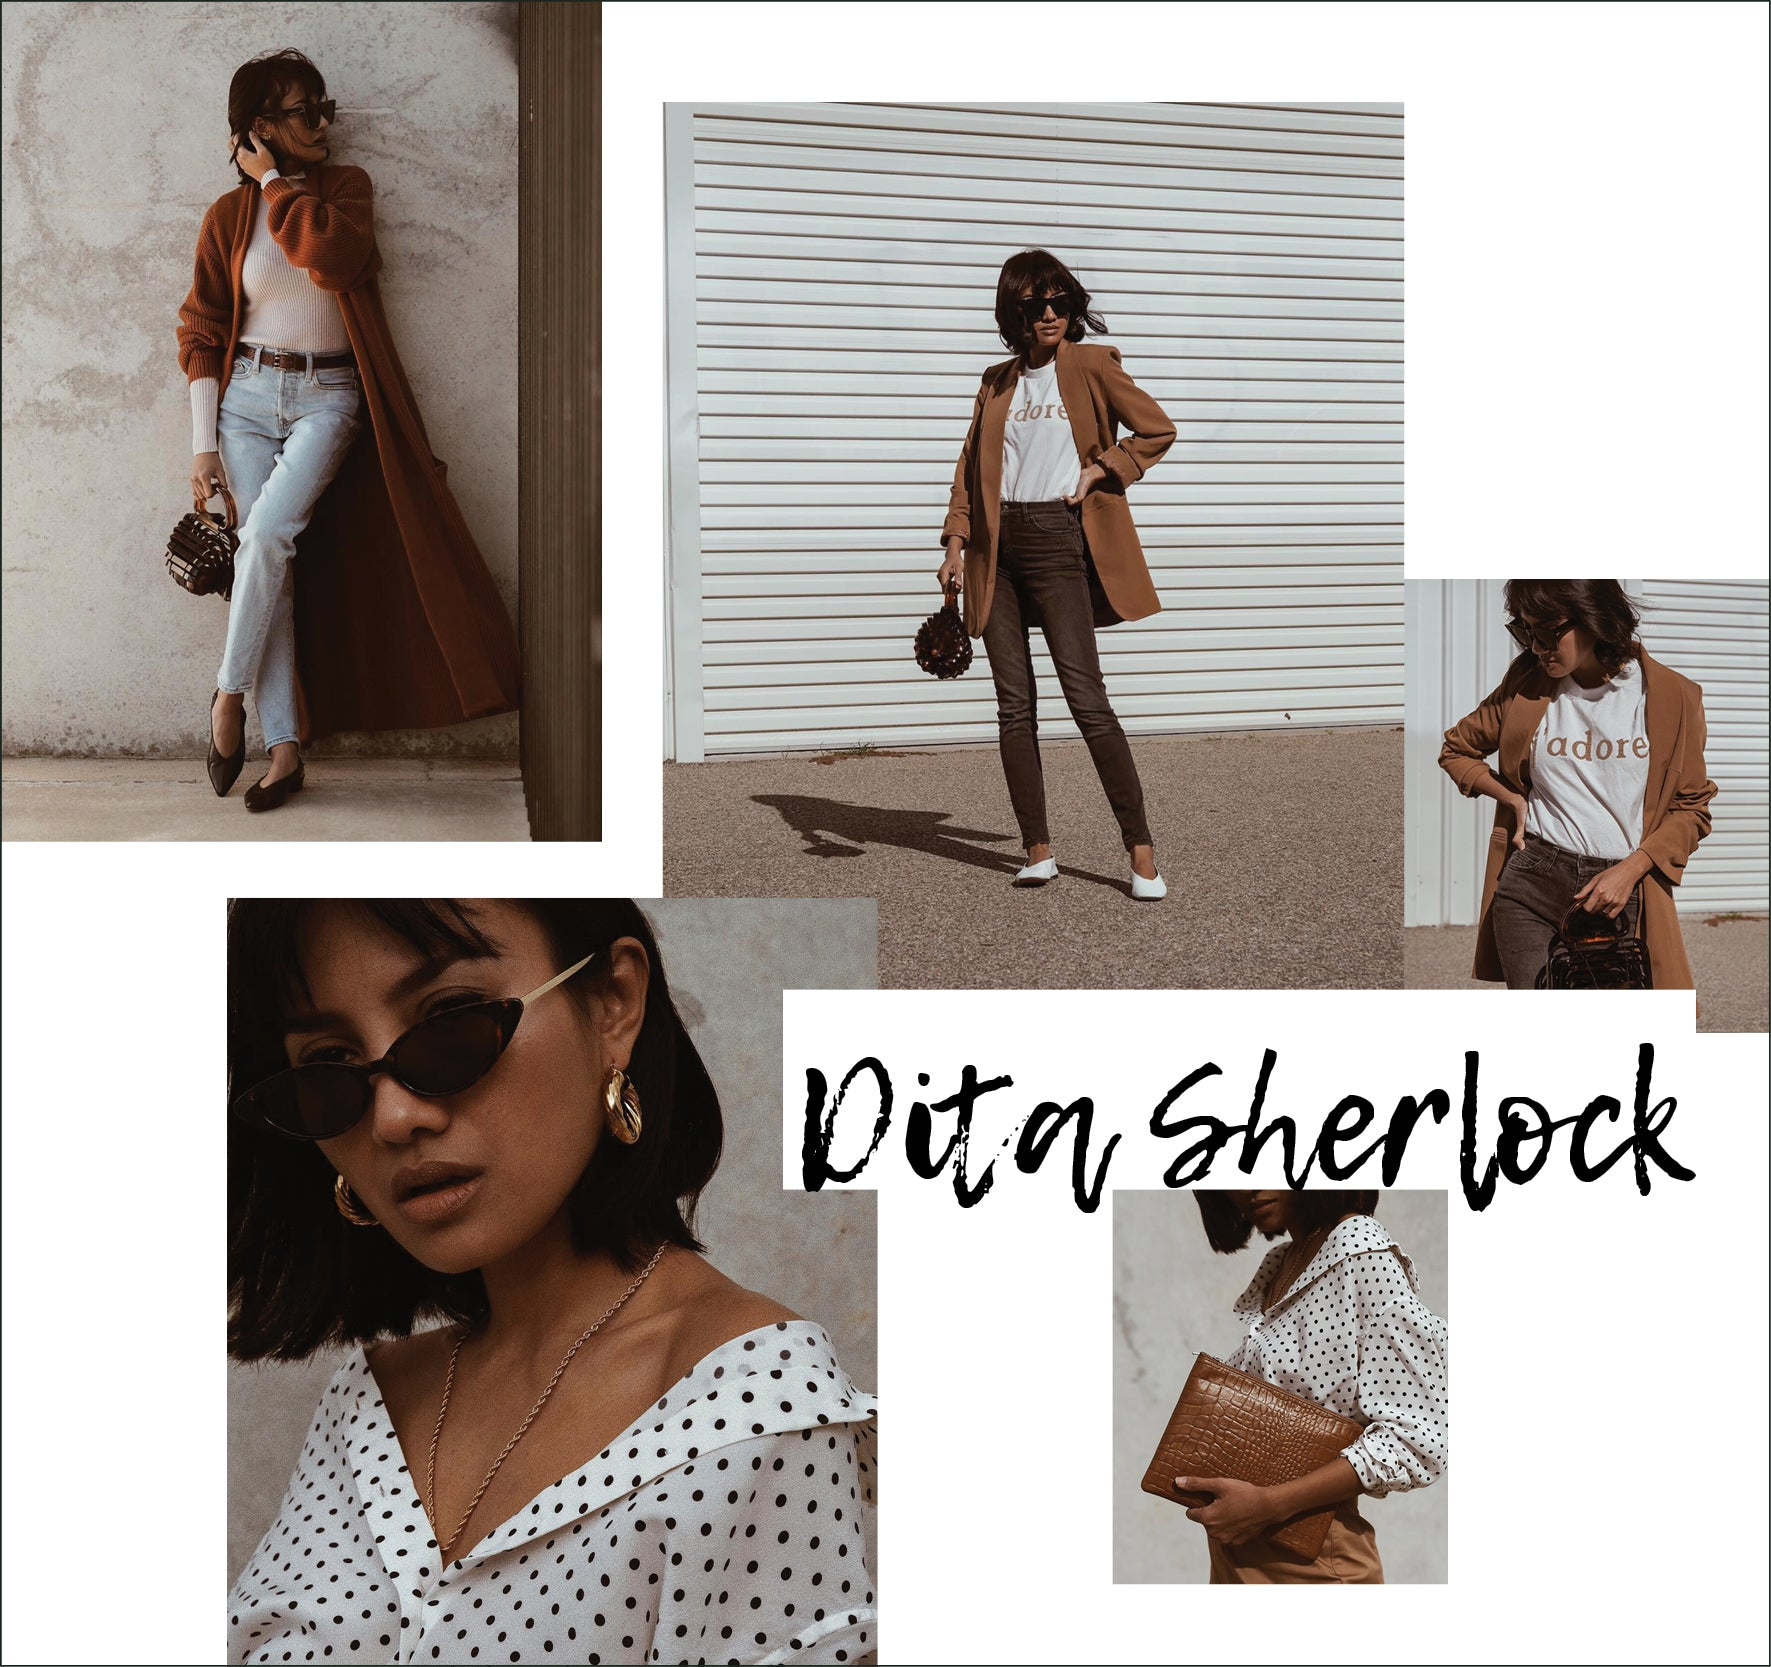 Dita Sherlock instagram images collage design as style icon muse featured on ownmuse.com